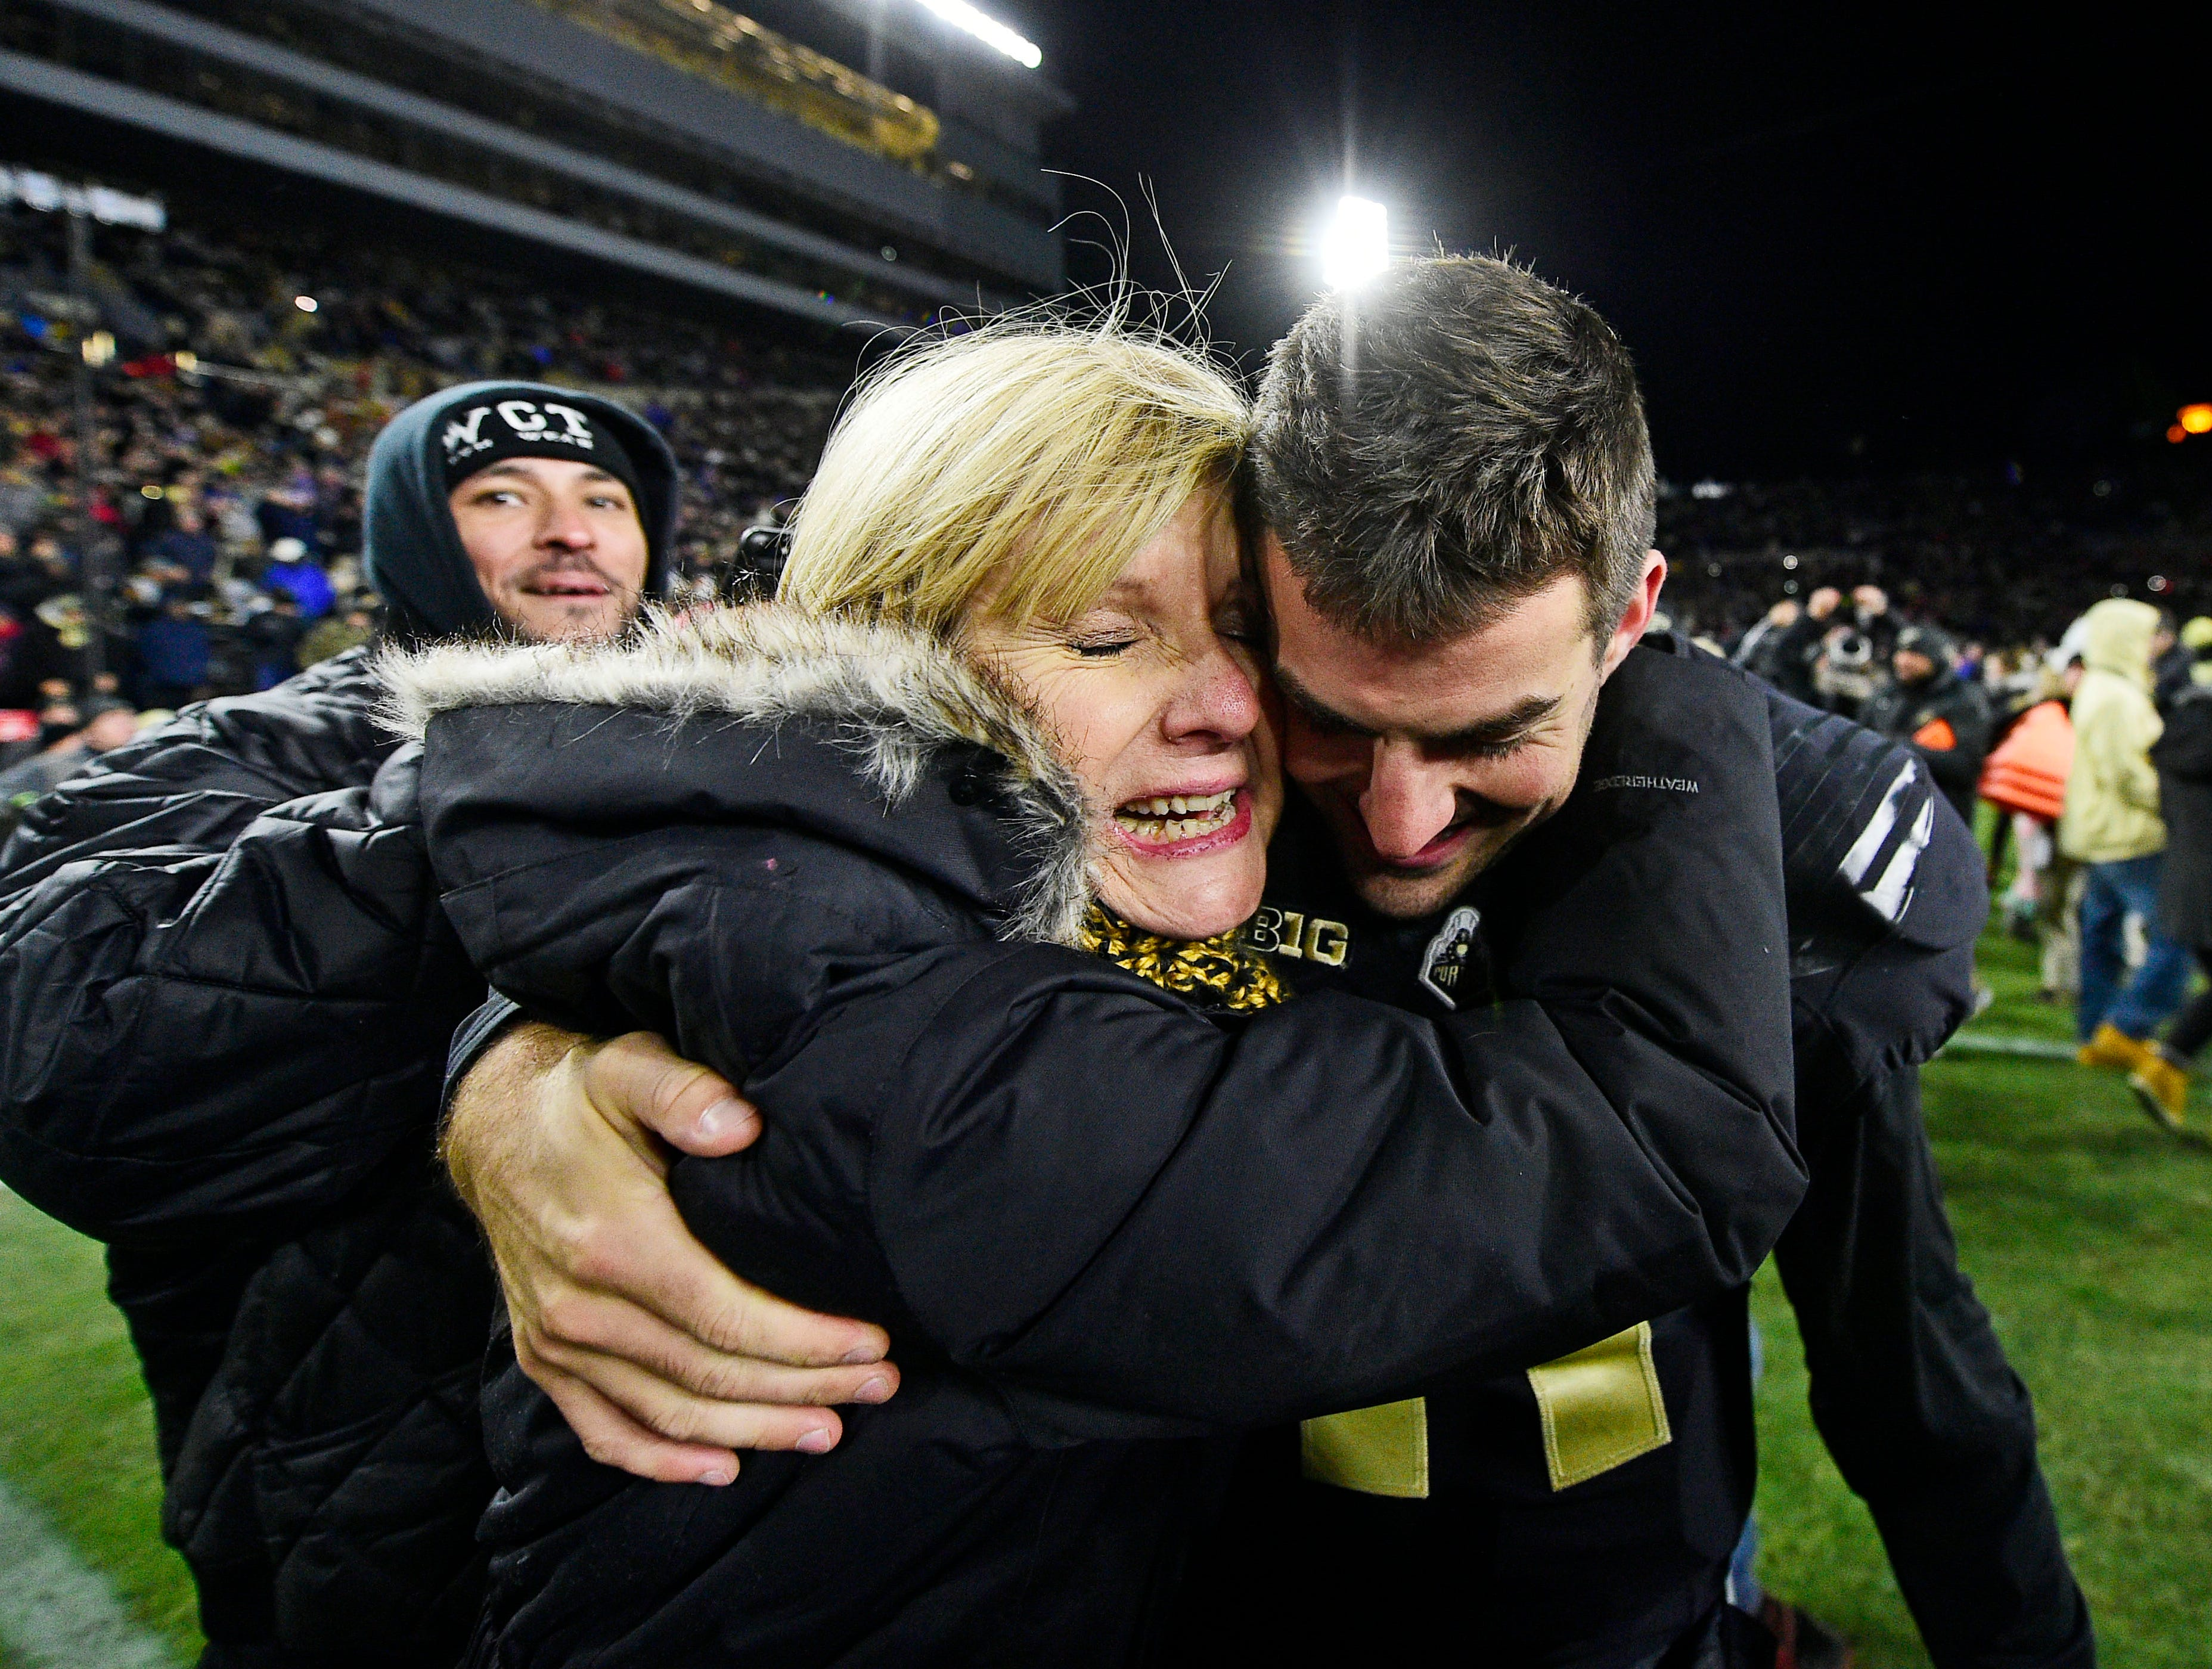 Purdue Boilermakers starting quarterback David Blough celebrates with his mother after a win over the Ohio State Buckeyes at Ross-Ade Stadium.